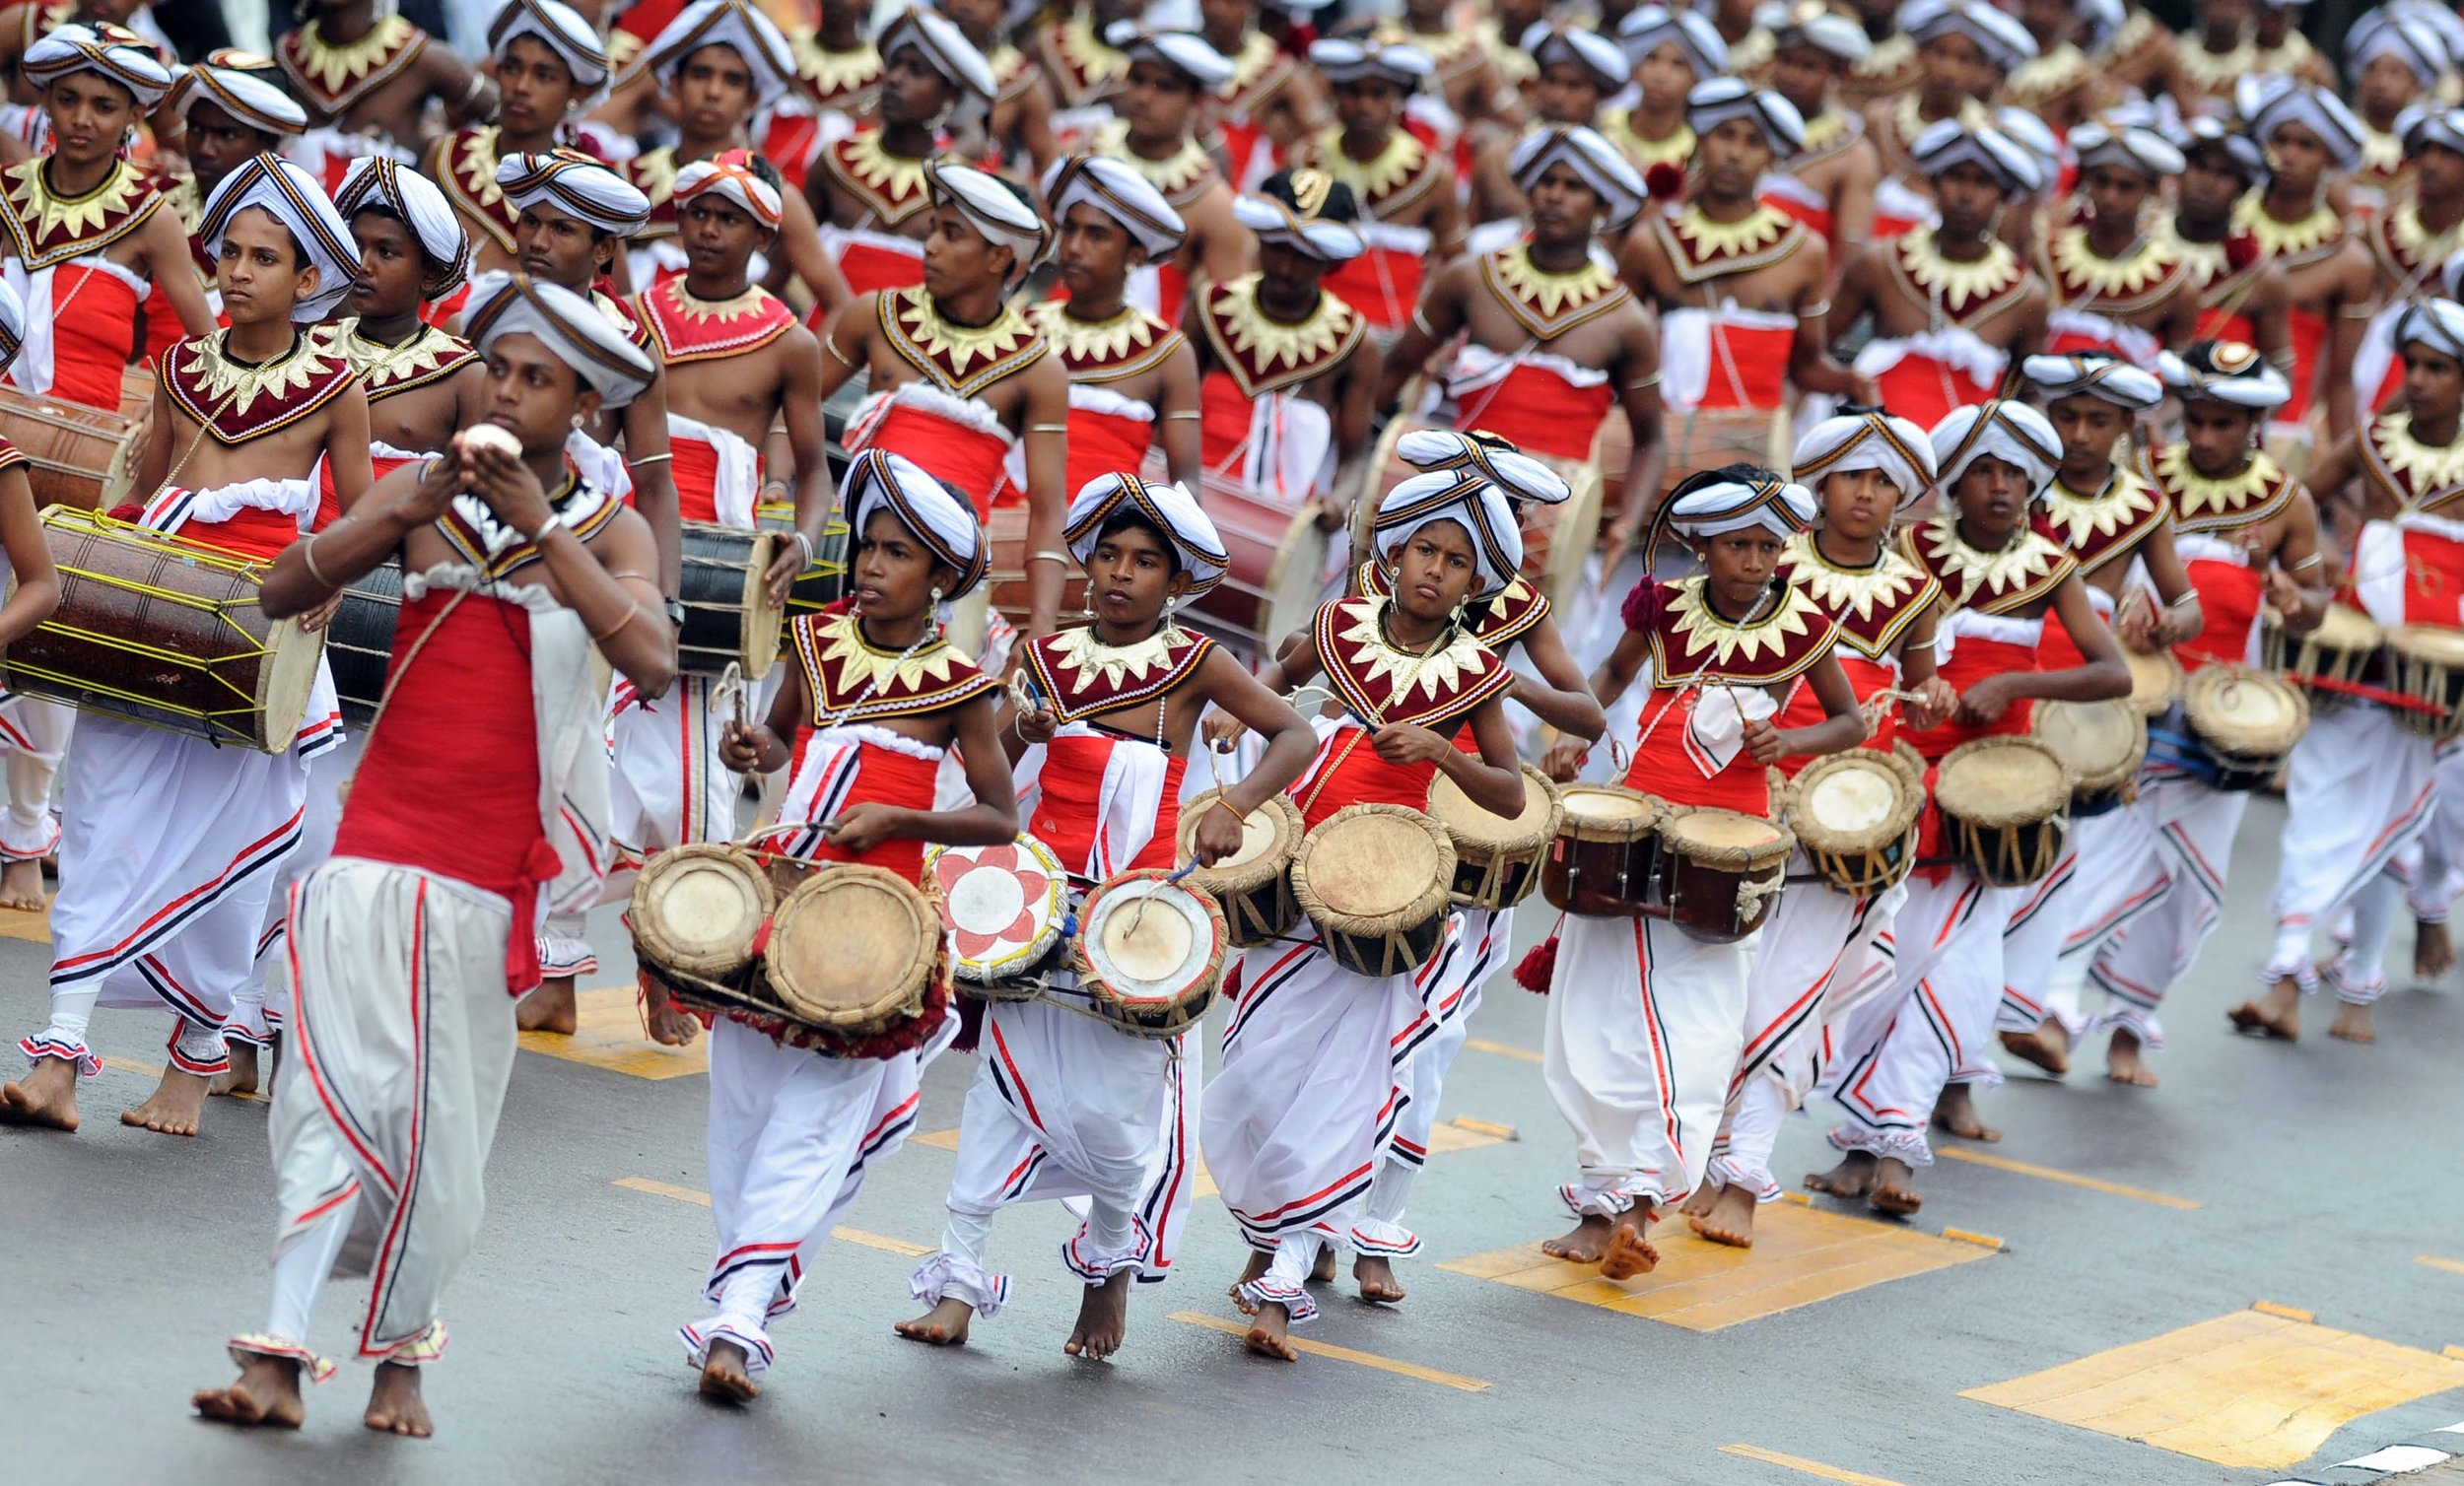 Ceremonial performance (Exclusive tours to Sri Lanka)